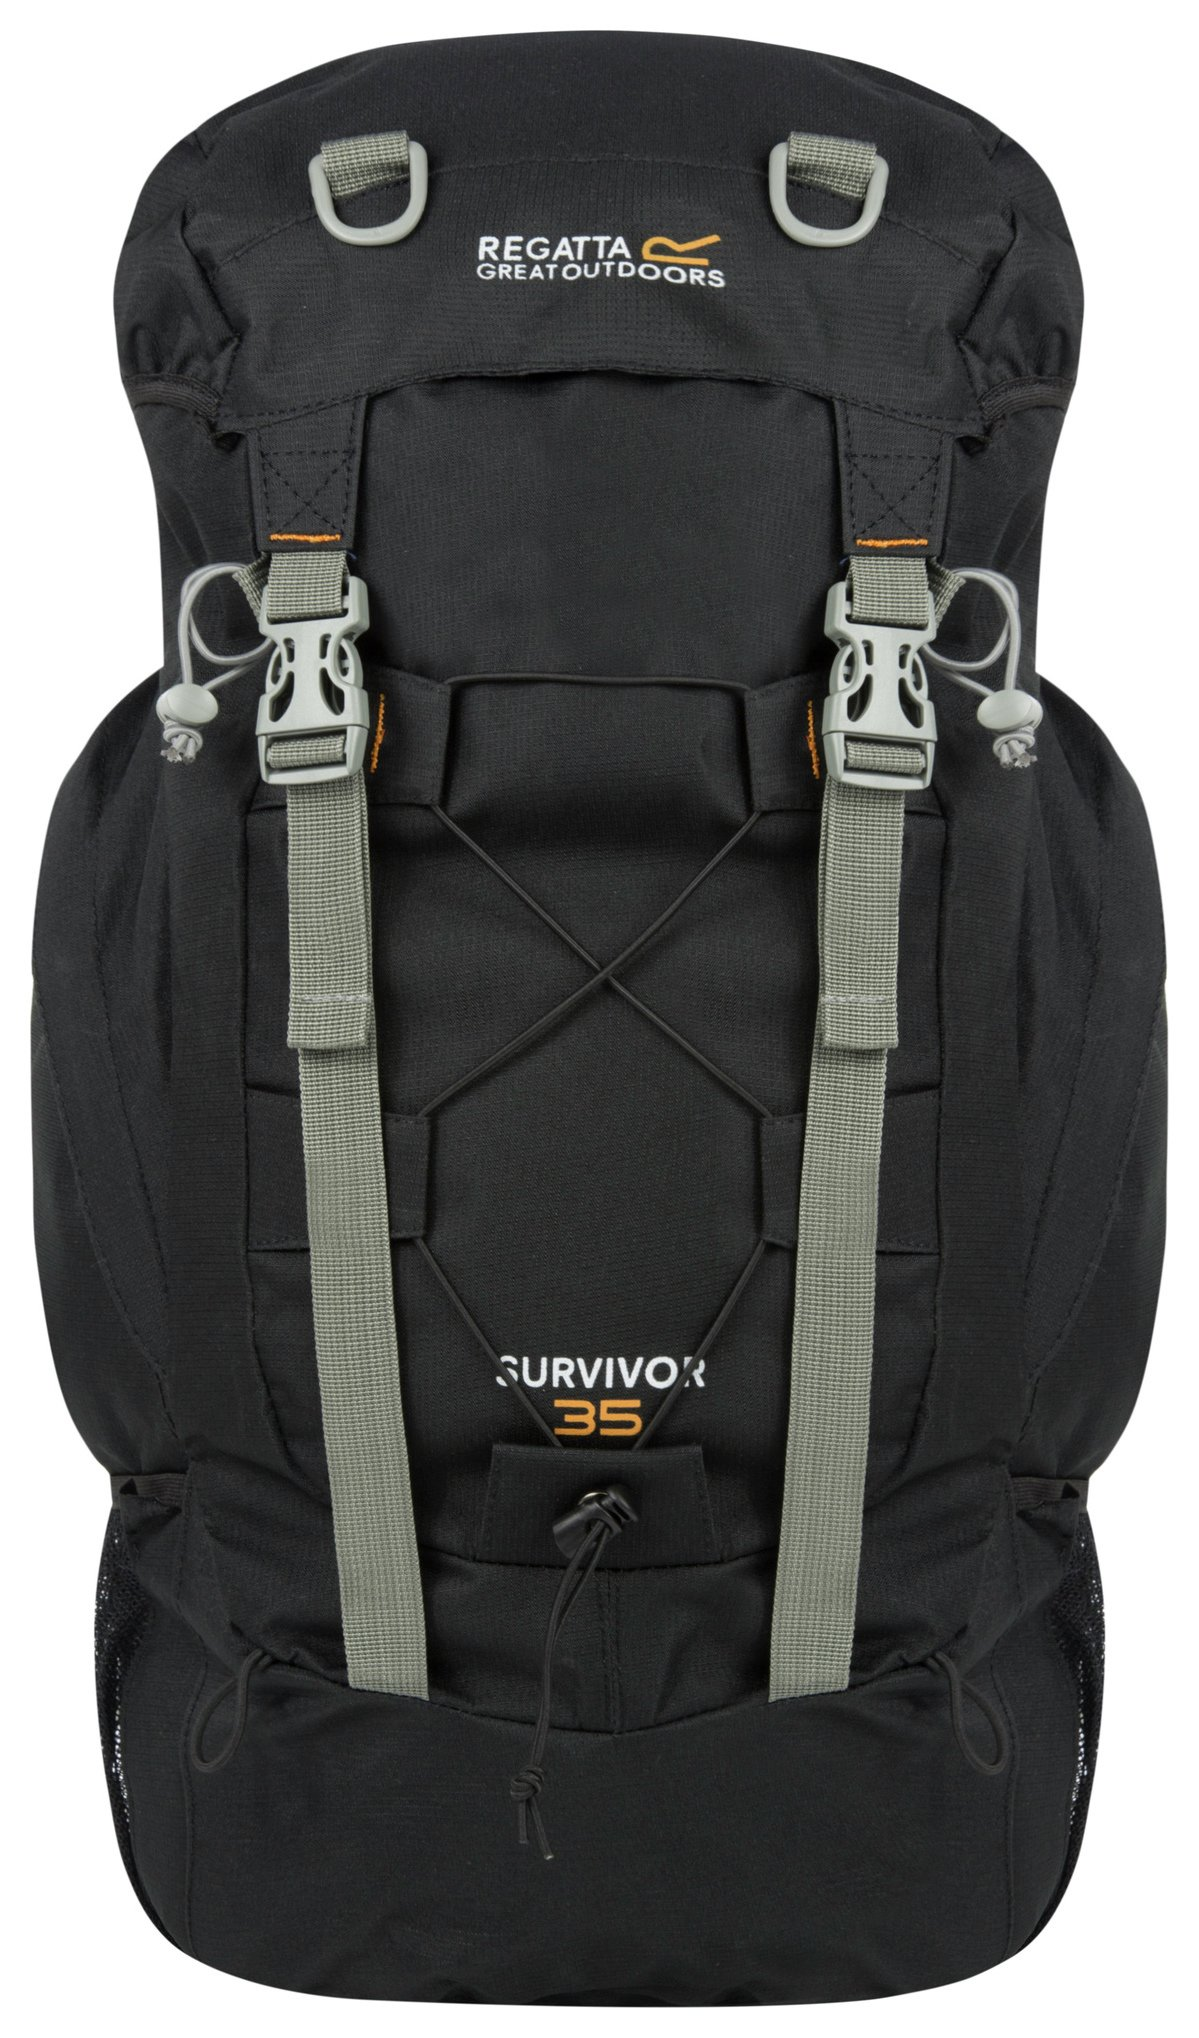 regatta-survivor-iii-35l-backpack-black